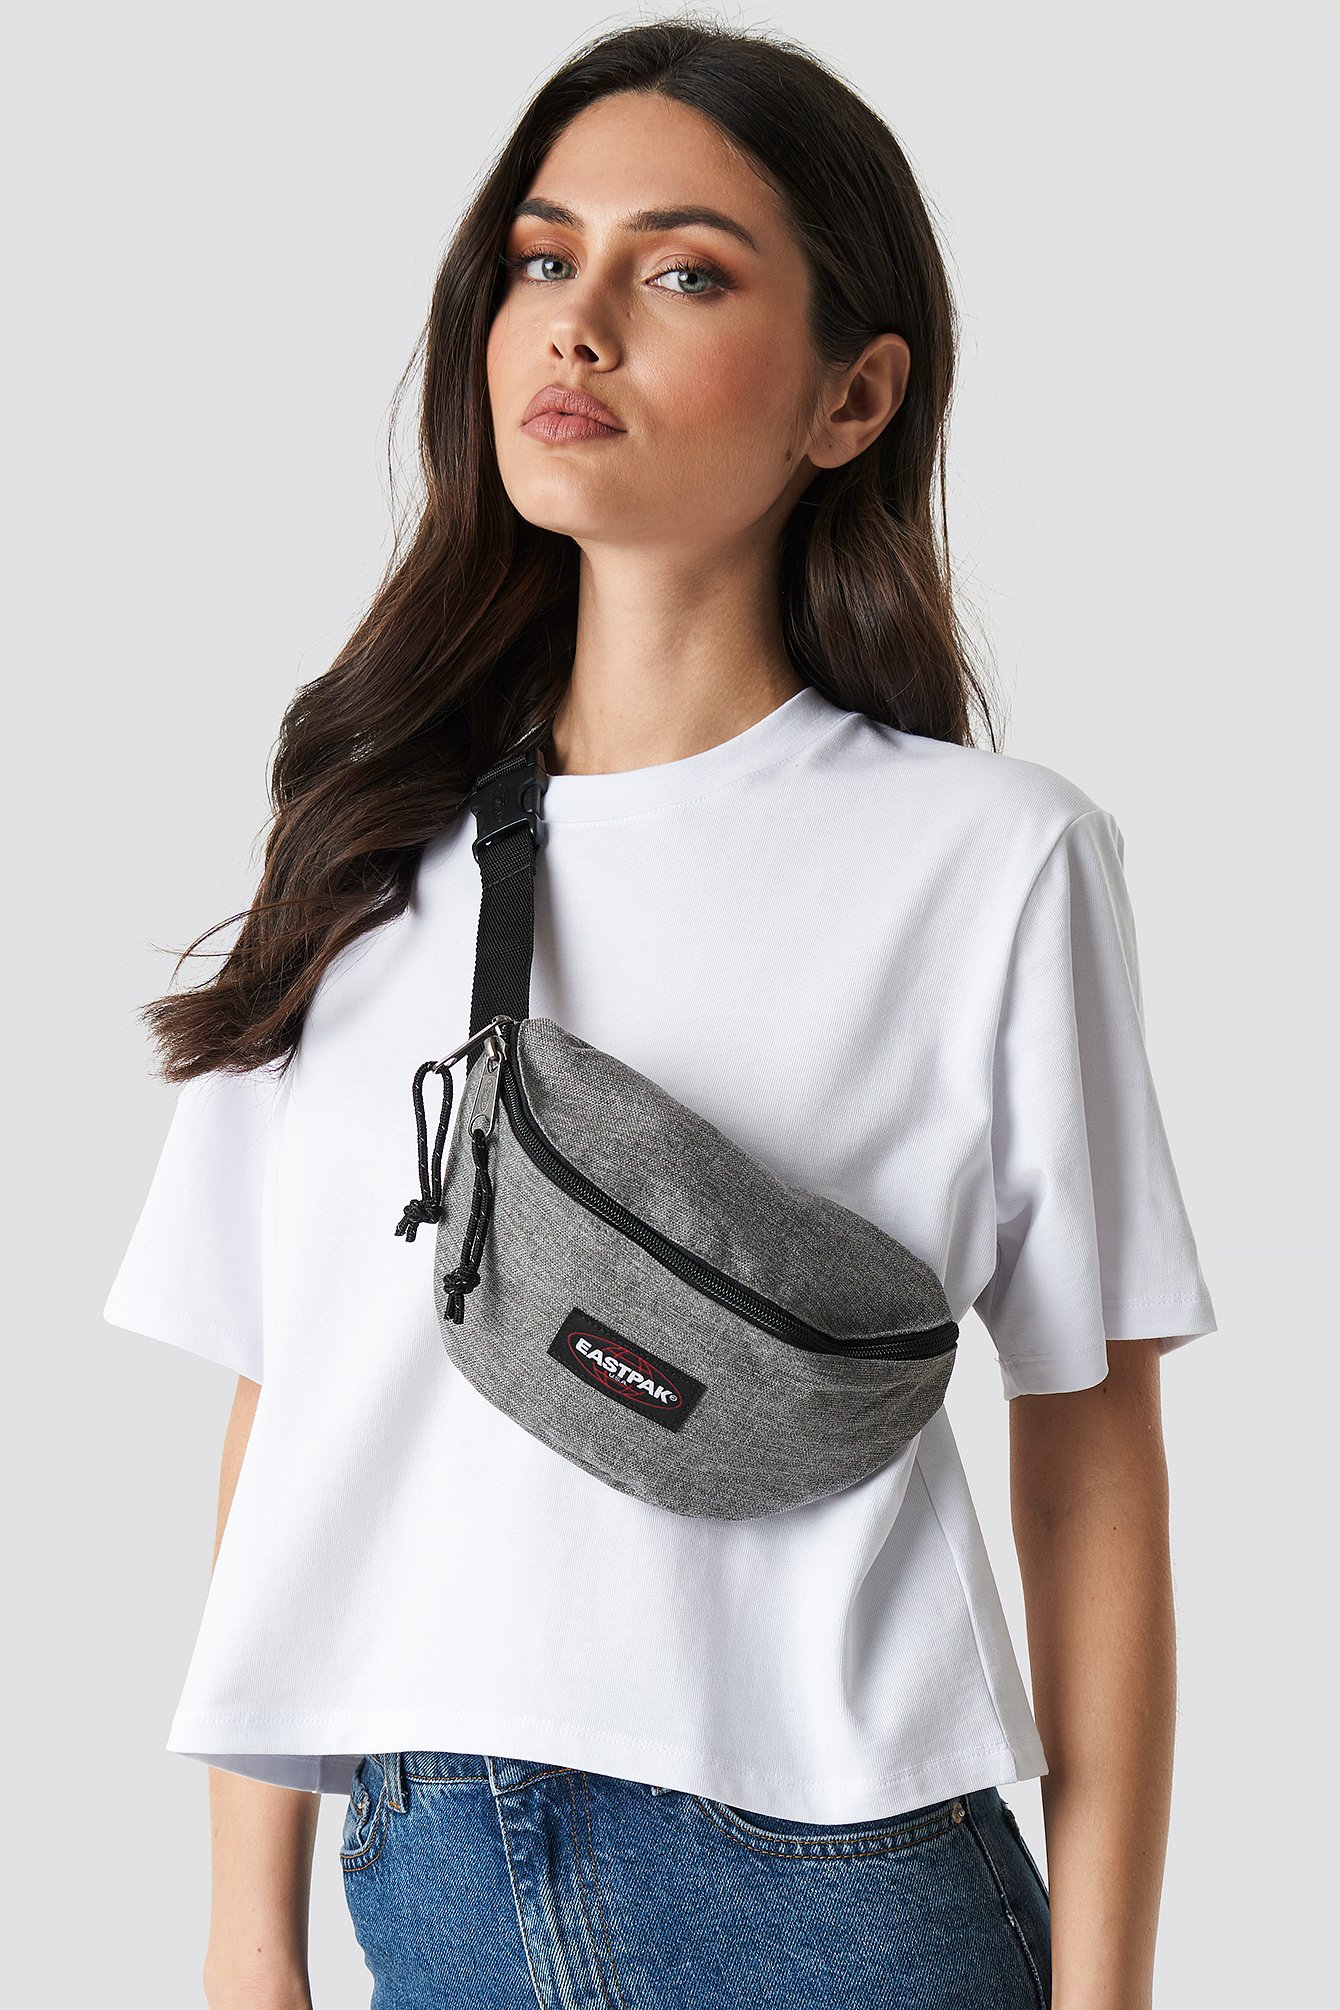 eastpak -  Springer Bag - Grey